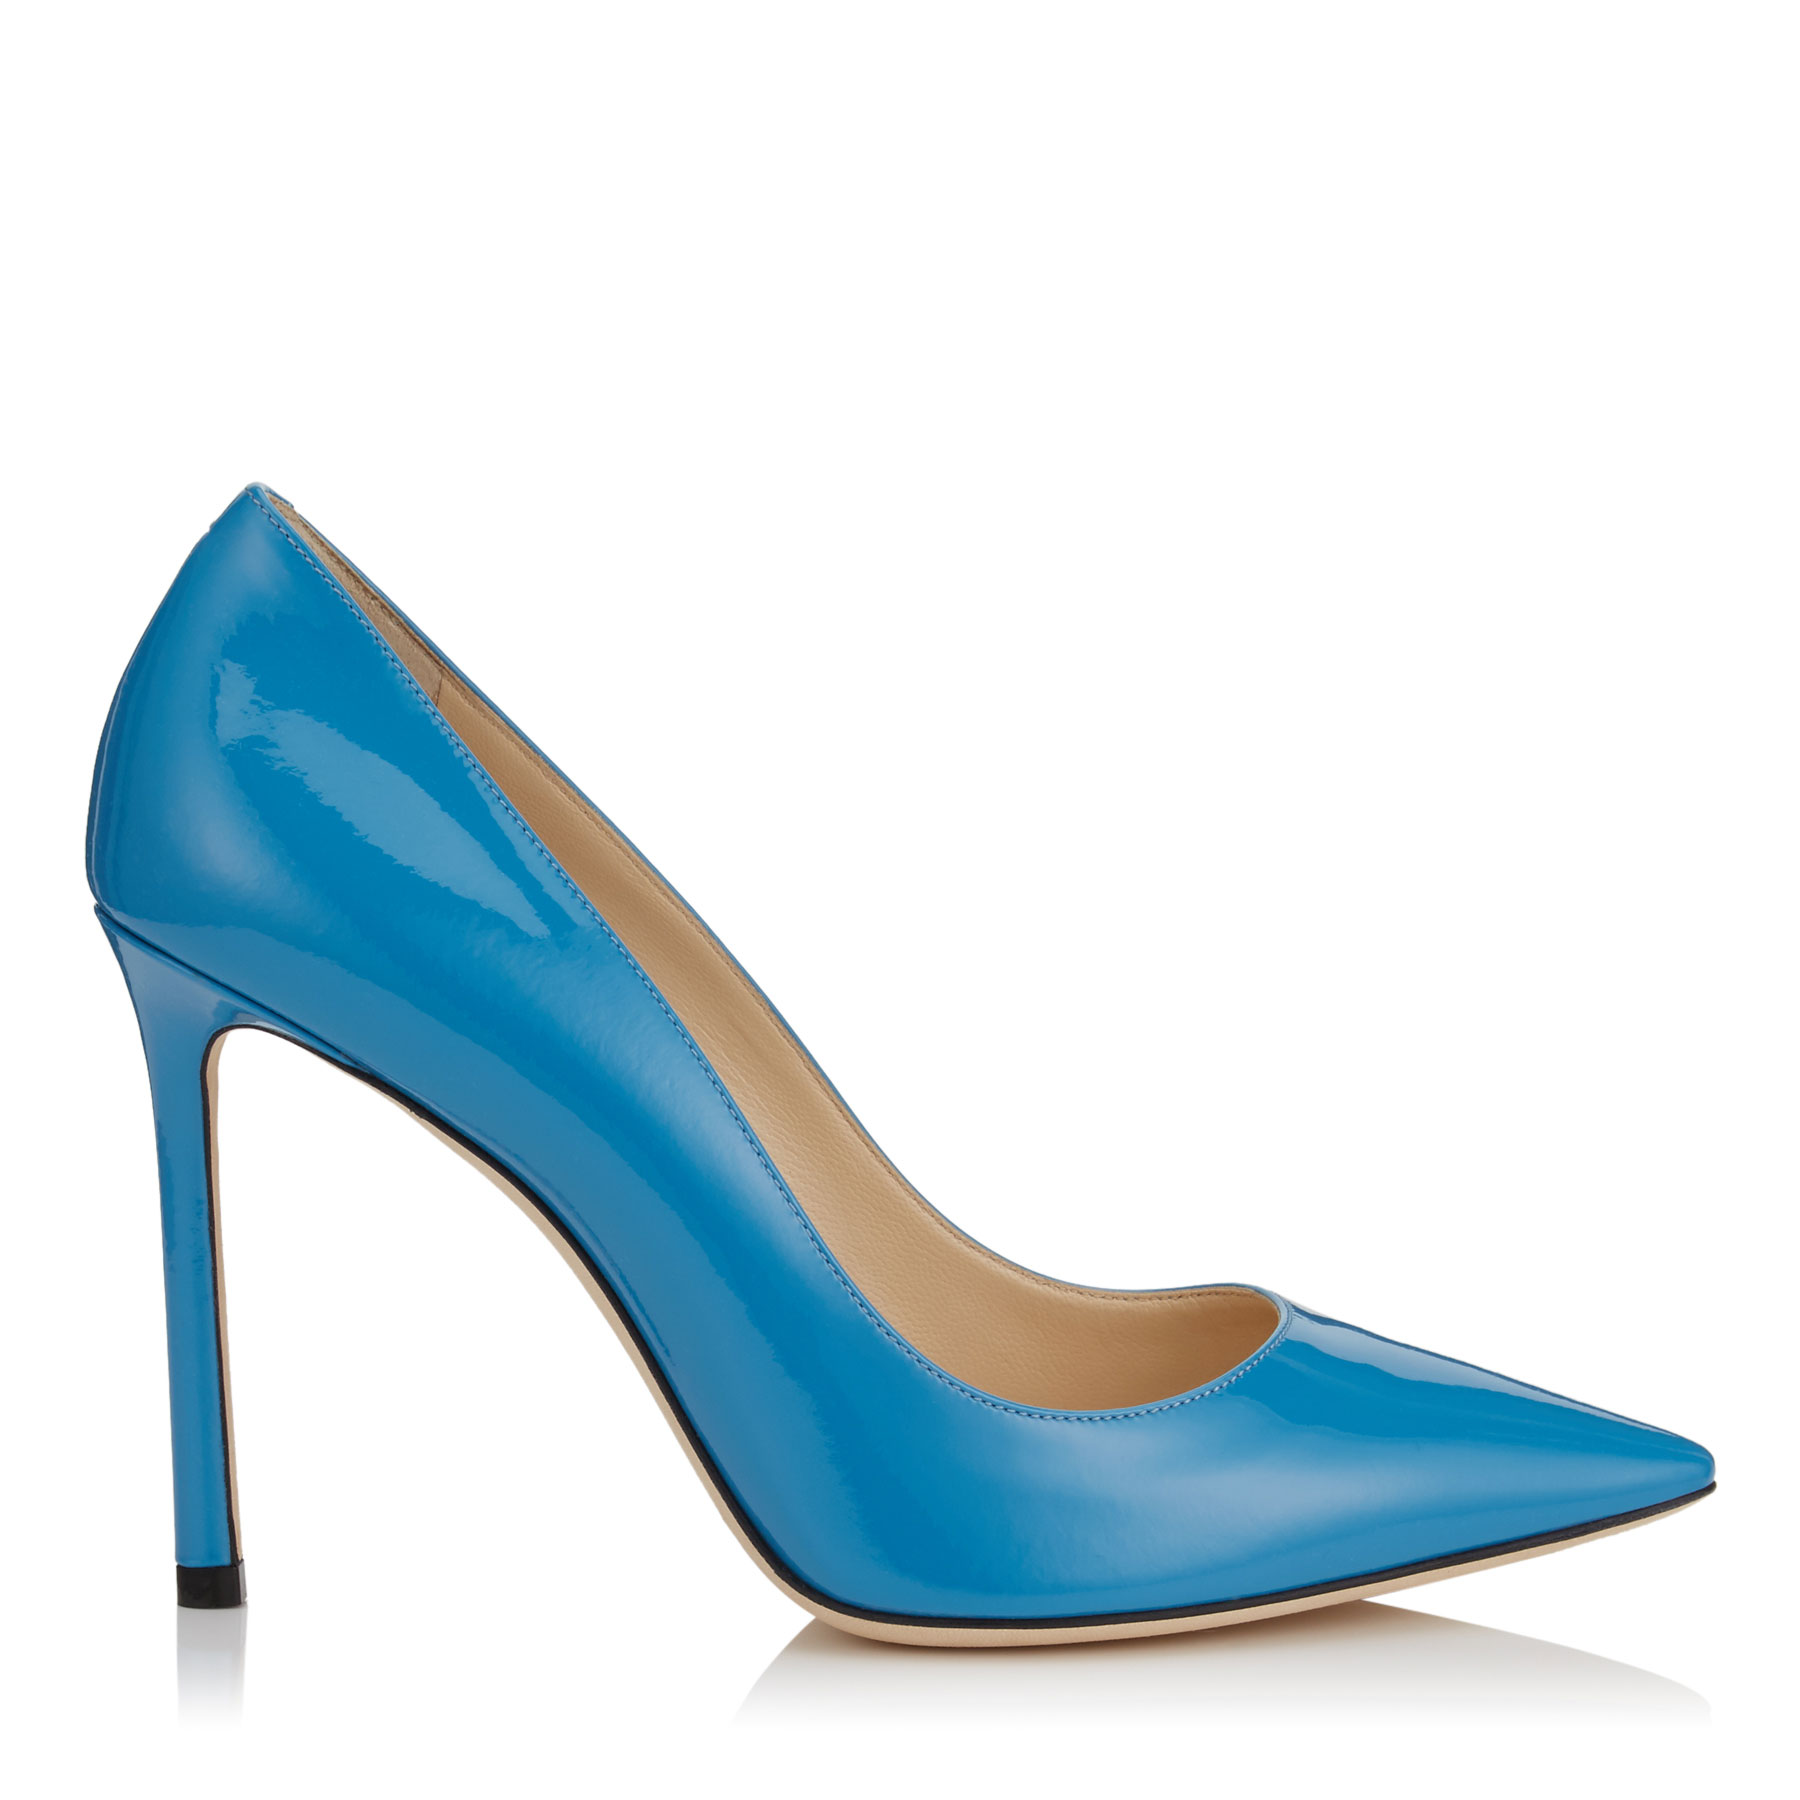 ROMY 100 Robot Blue Patent Leather Pointy Toe Pumps